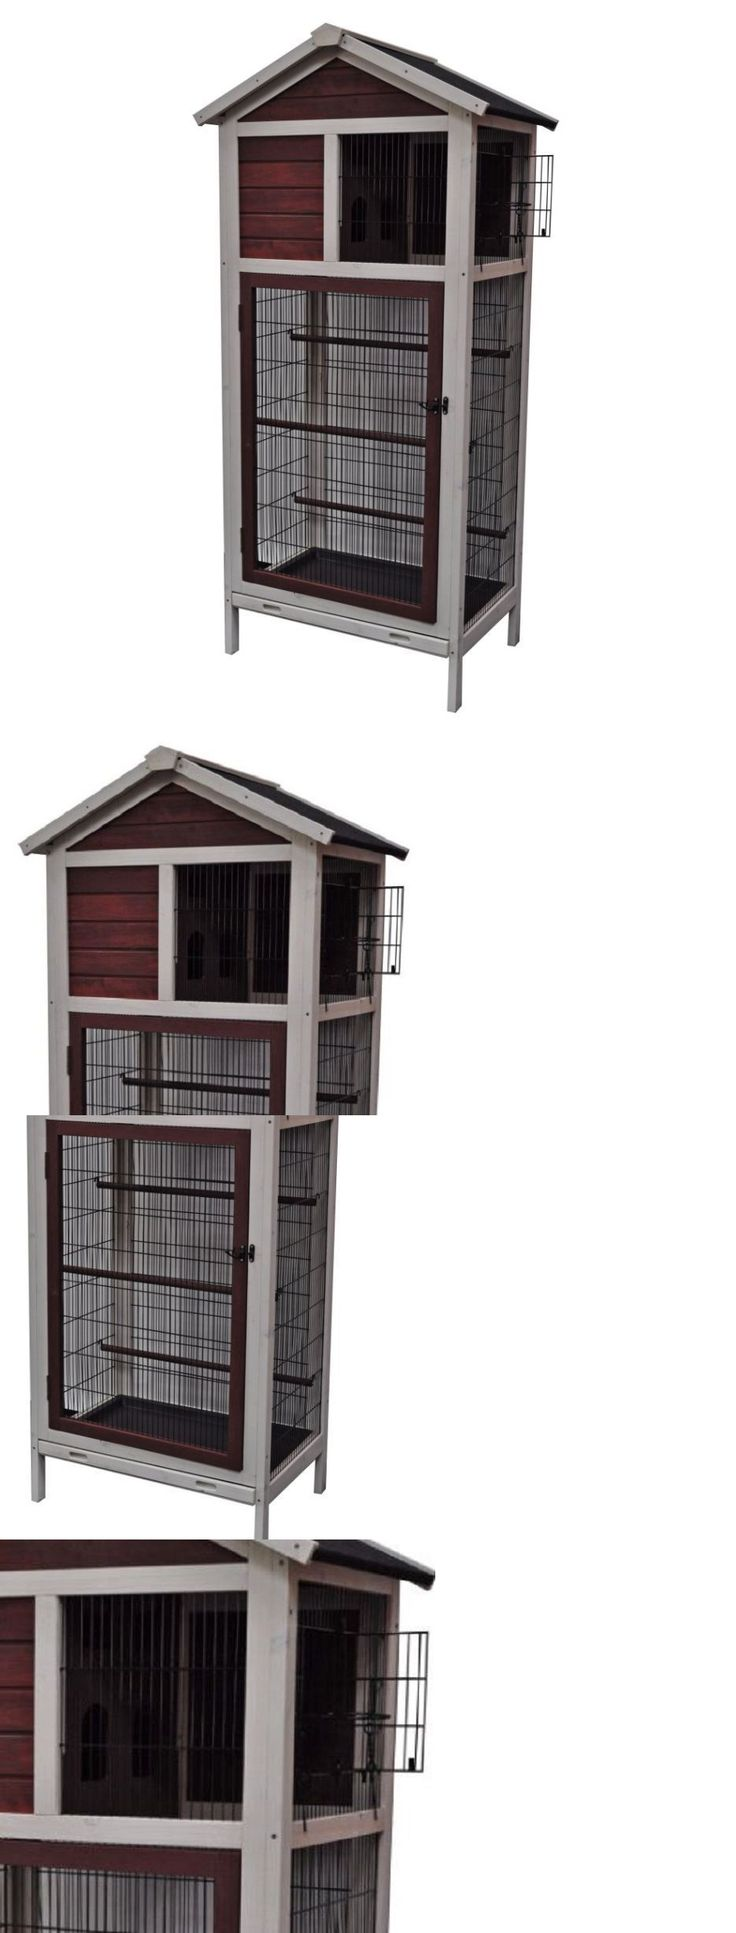 Cages 46289: Flight Cage For Birds Aviary Outdoor Large Parakeet Finch Big Bird House Hutch -> BUY IT NOW ONLY: $269.95 on eBay!